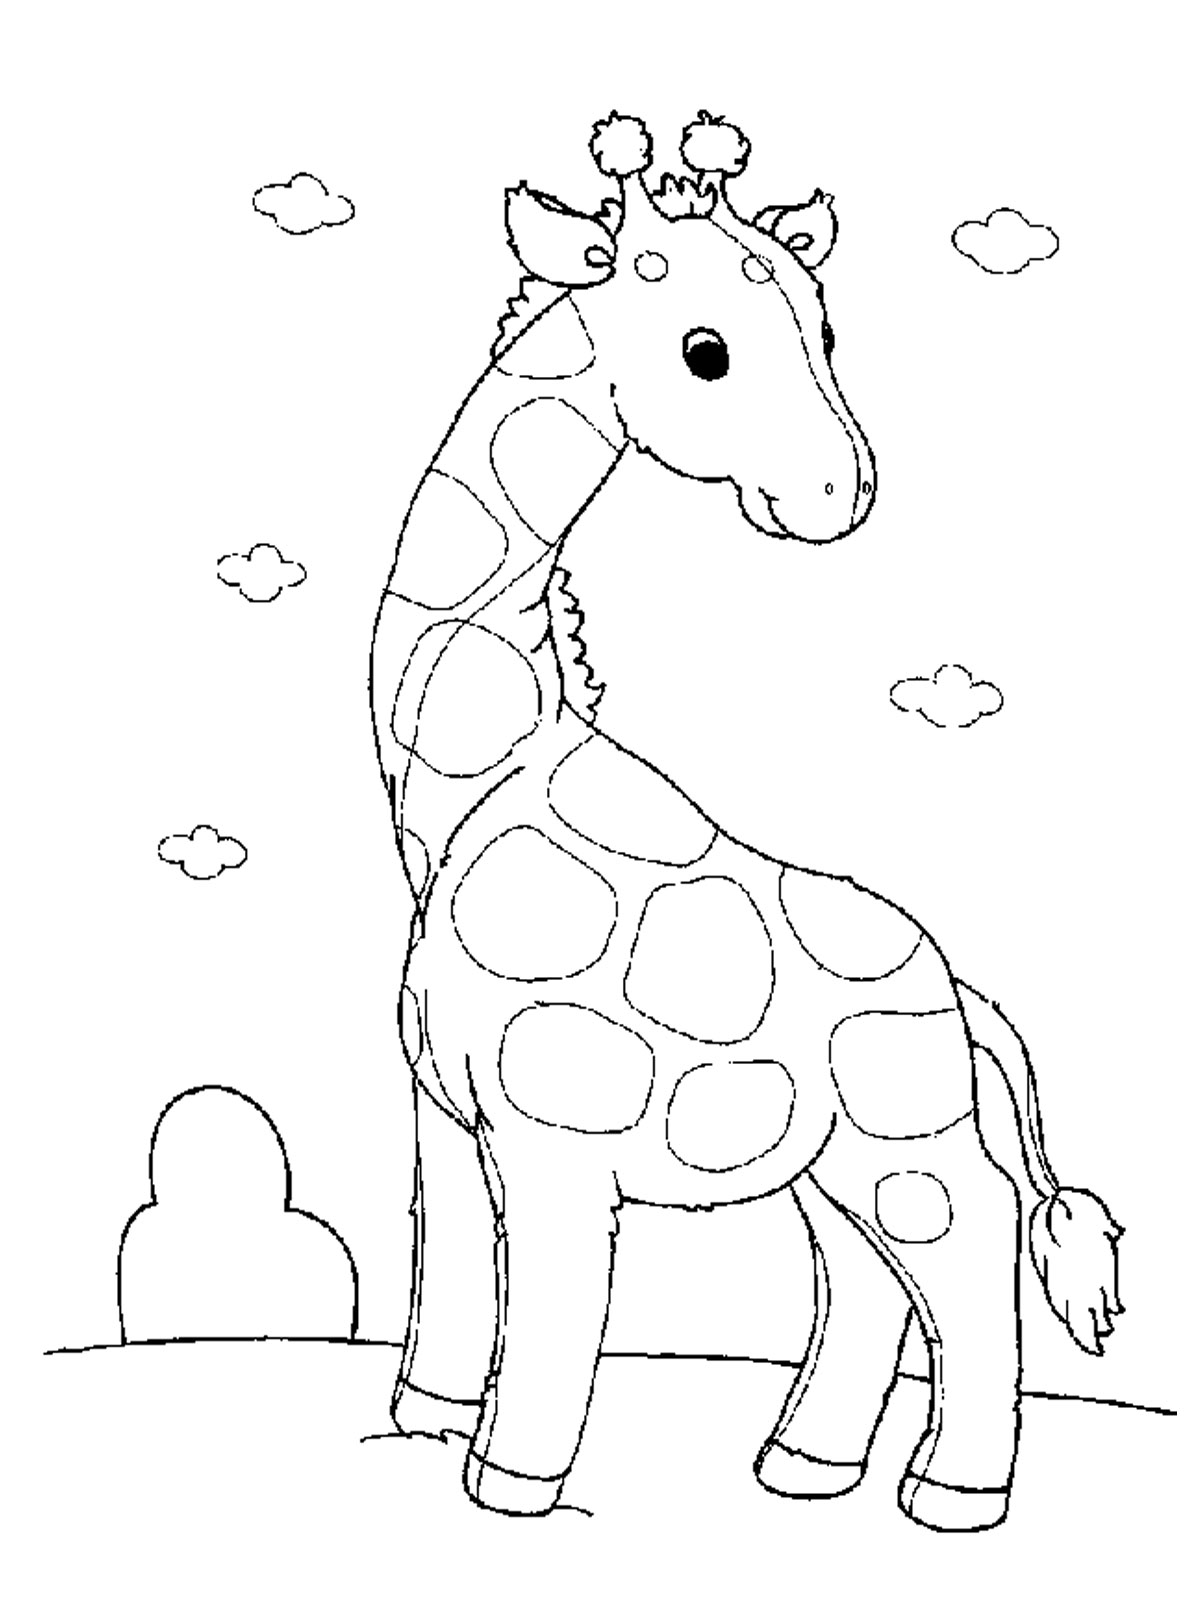 cute animal coloring pages for adults - free printable giraffe coloring pages for kids